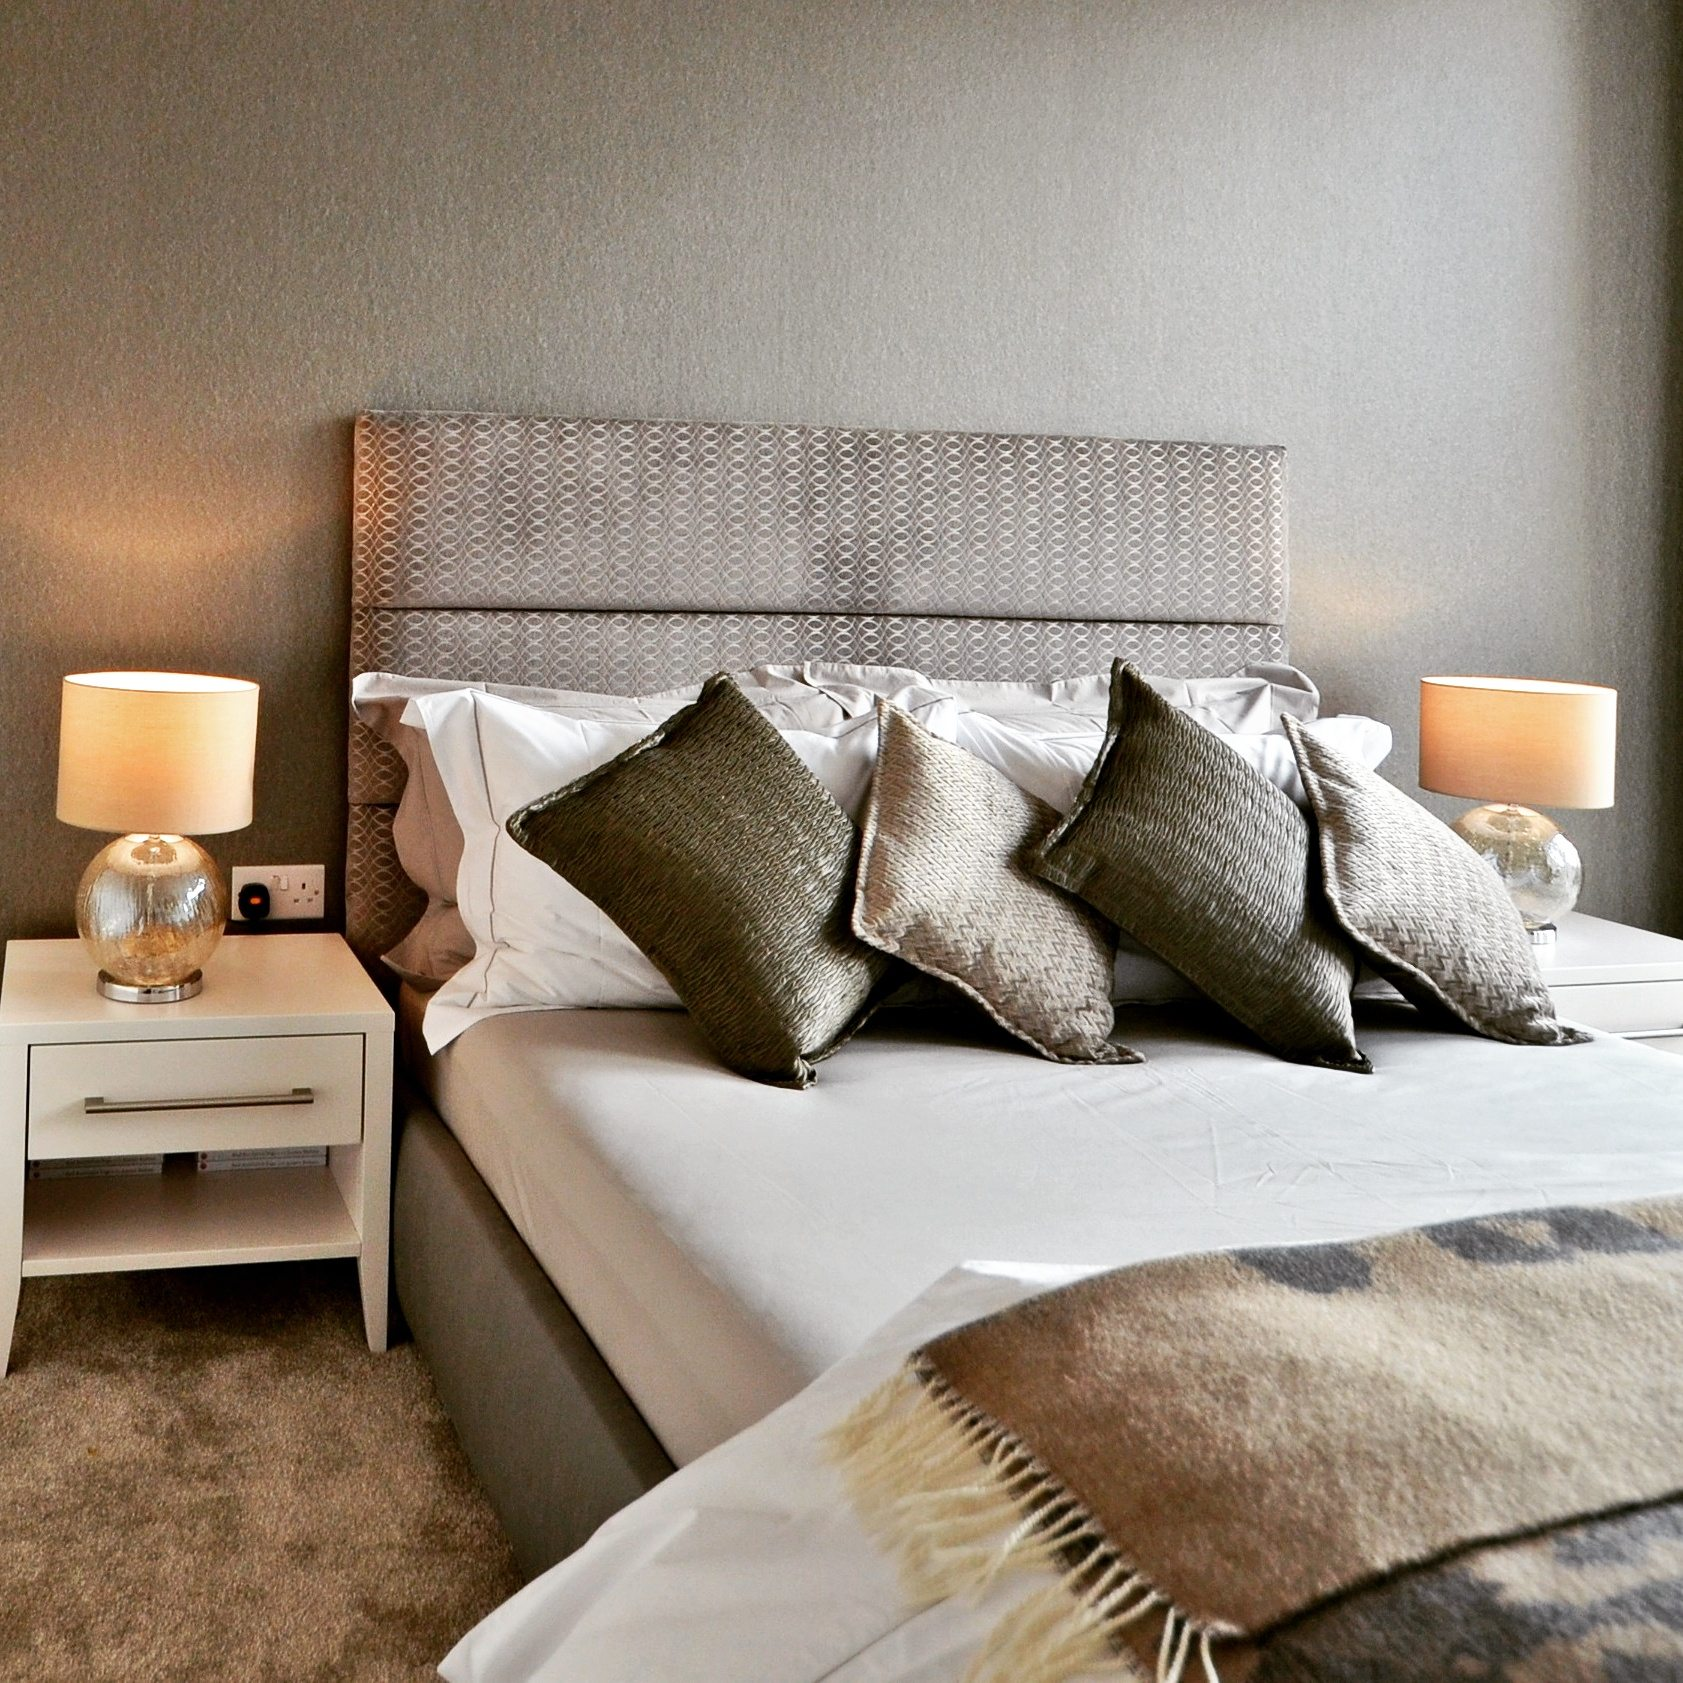 Lamb's Street Serviced Apartments - Clerkenwell, London